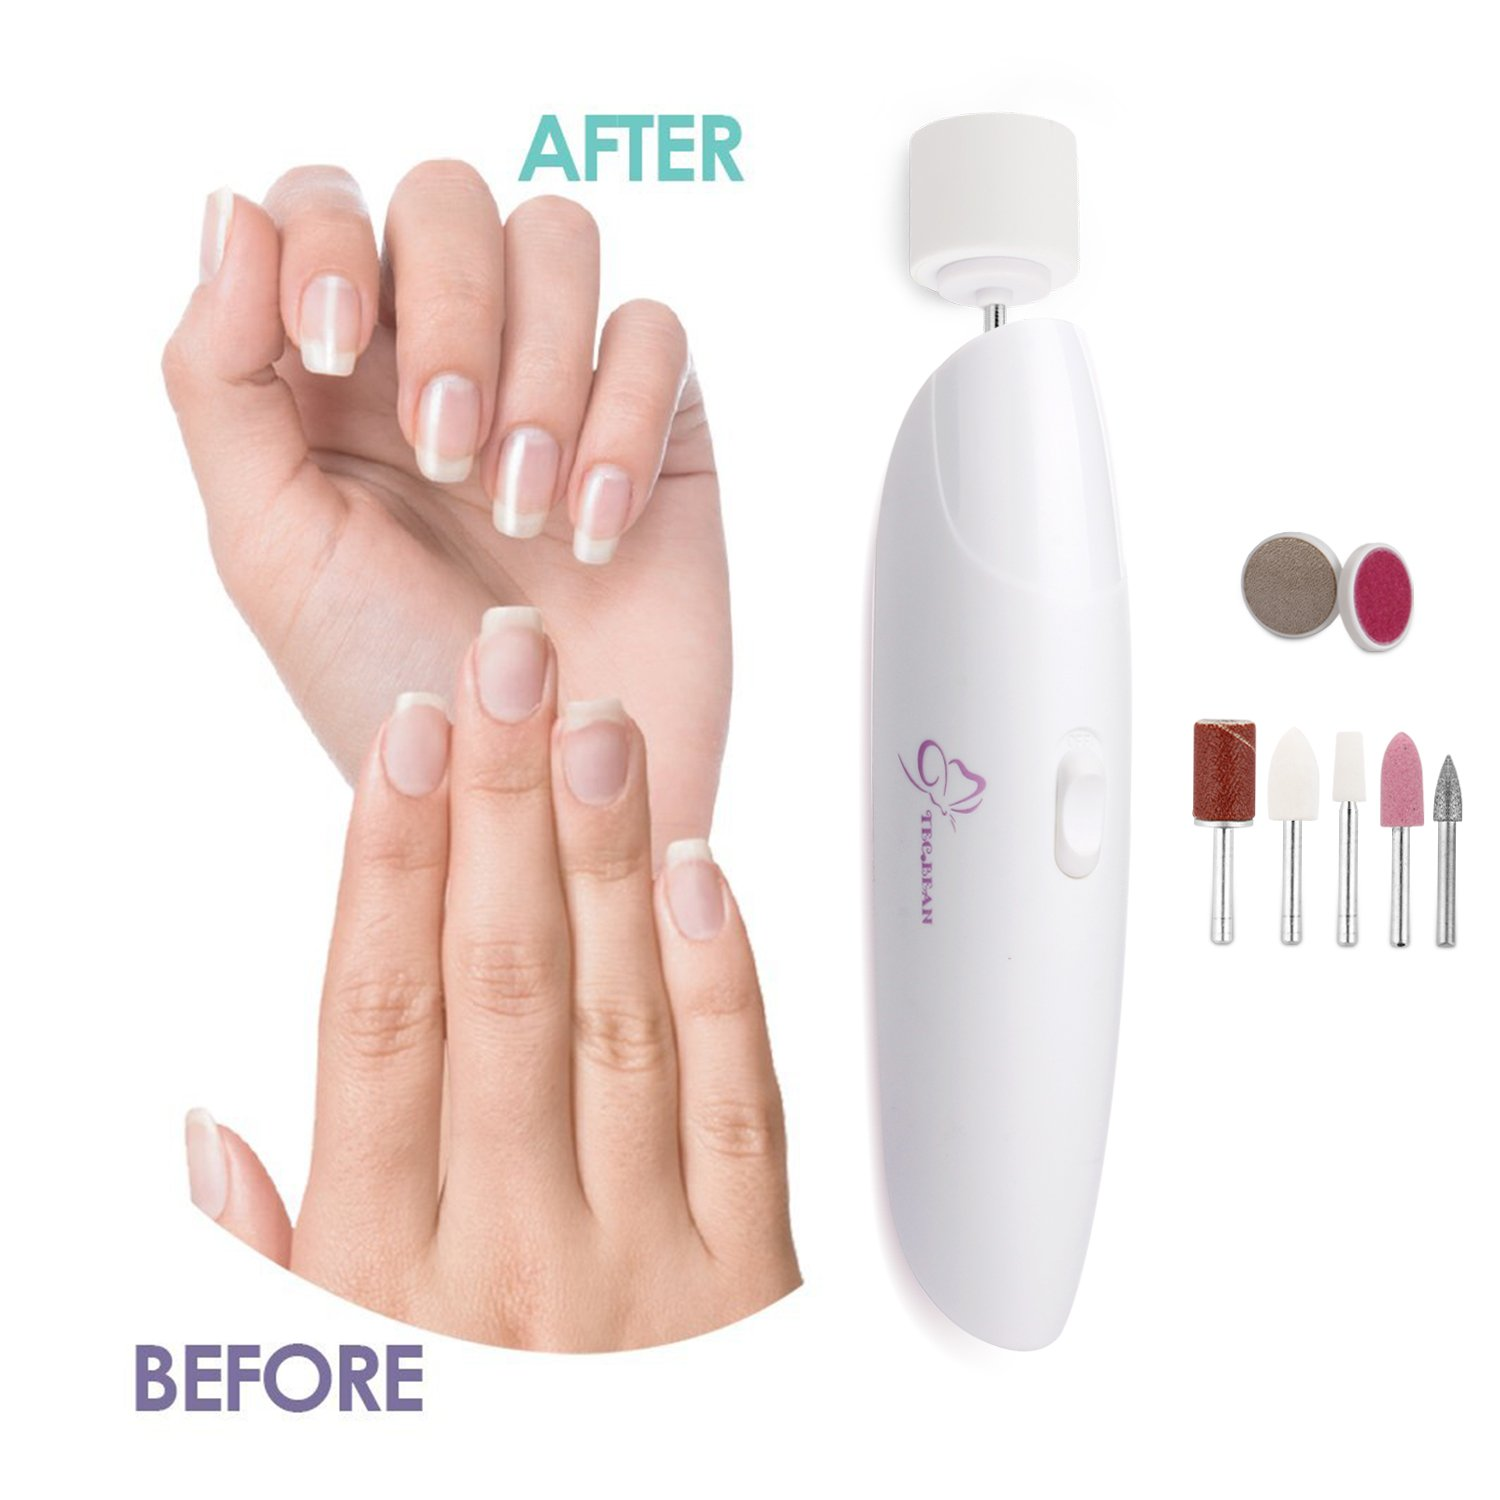 Amazon.com : Electric Manicure and Pedicure Set, 8-in-1 Nail Care ...